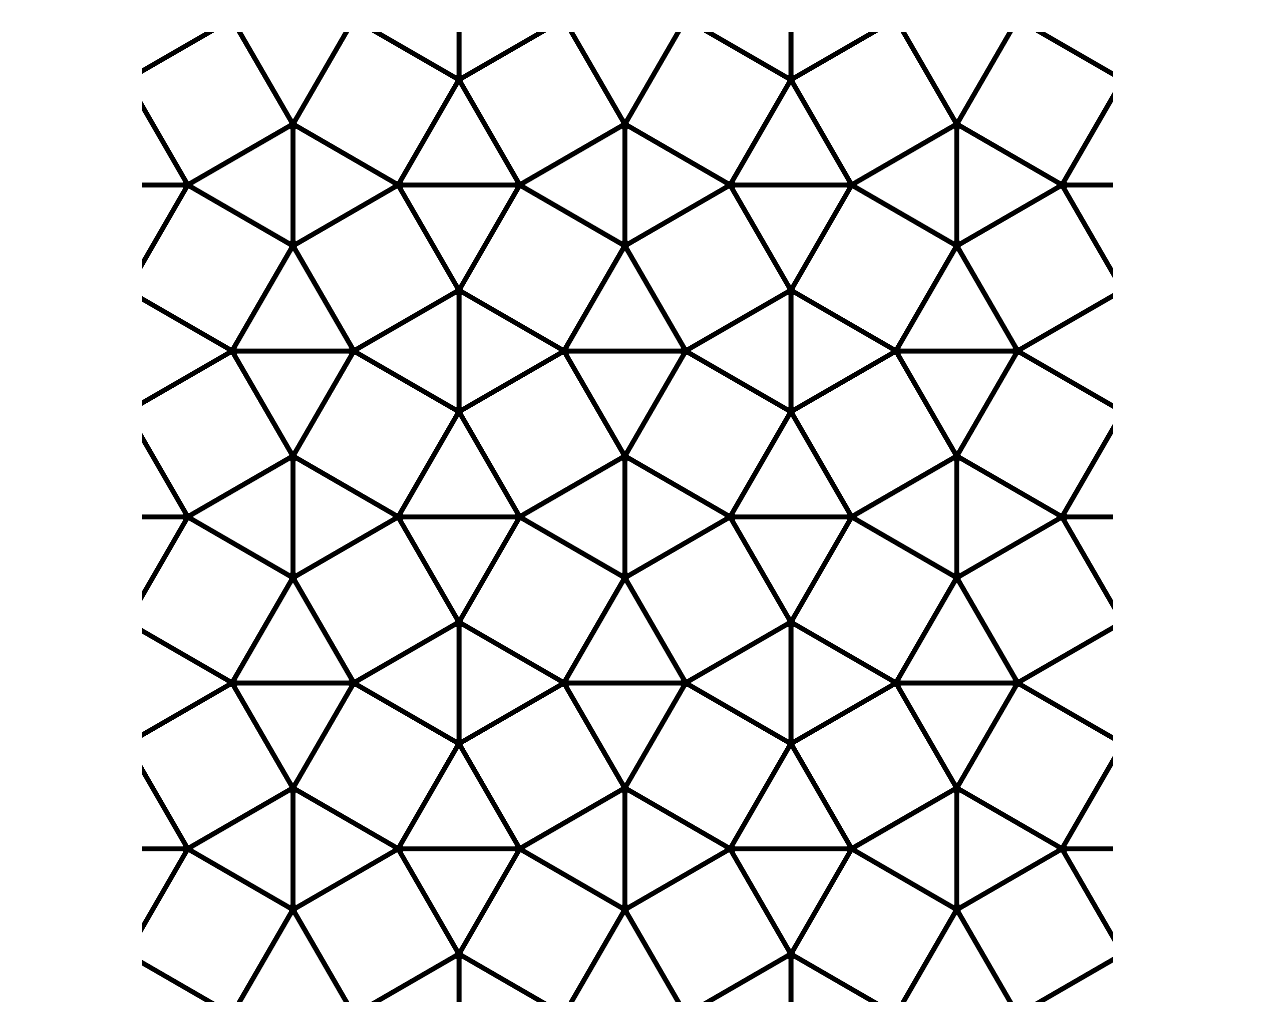 printable tessellation patterns to color geometric tessellations coloring pages coloring home patterns printable color tessellation to